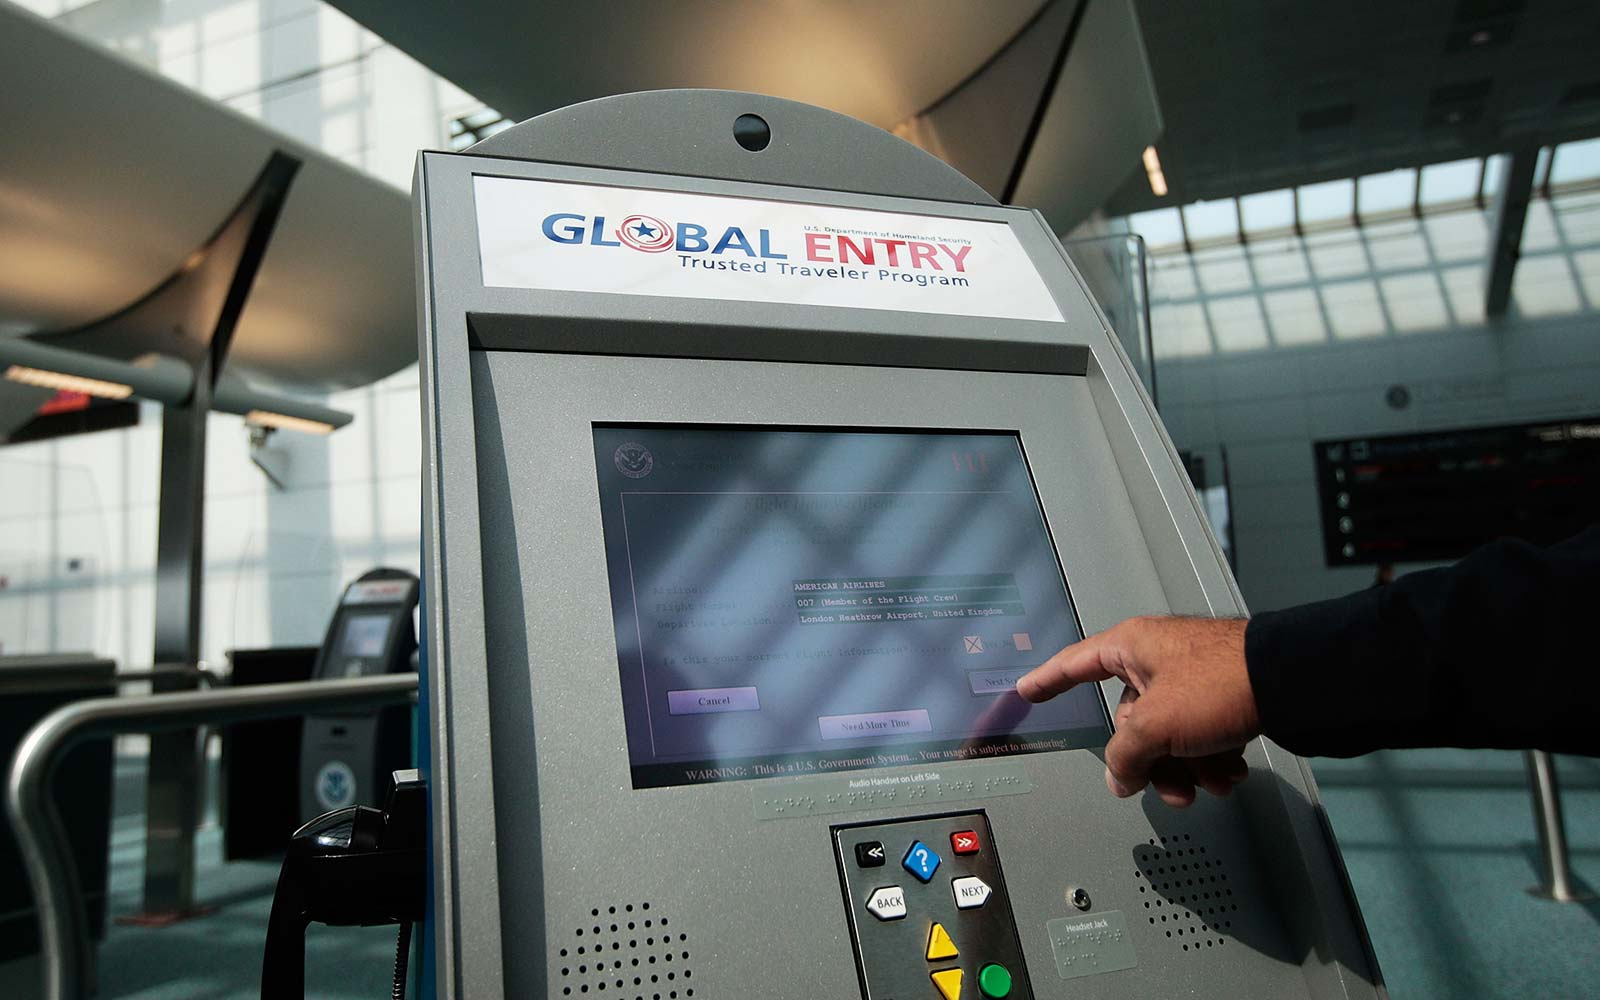 US Customs and Border Protection Global Entry Kiosk Newark Airport Security